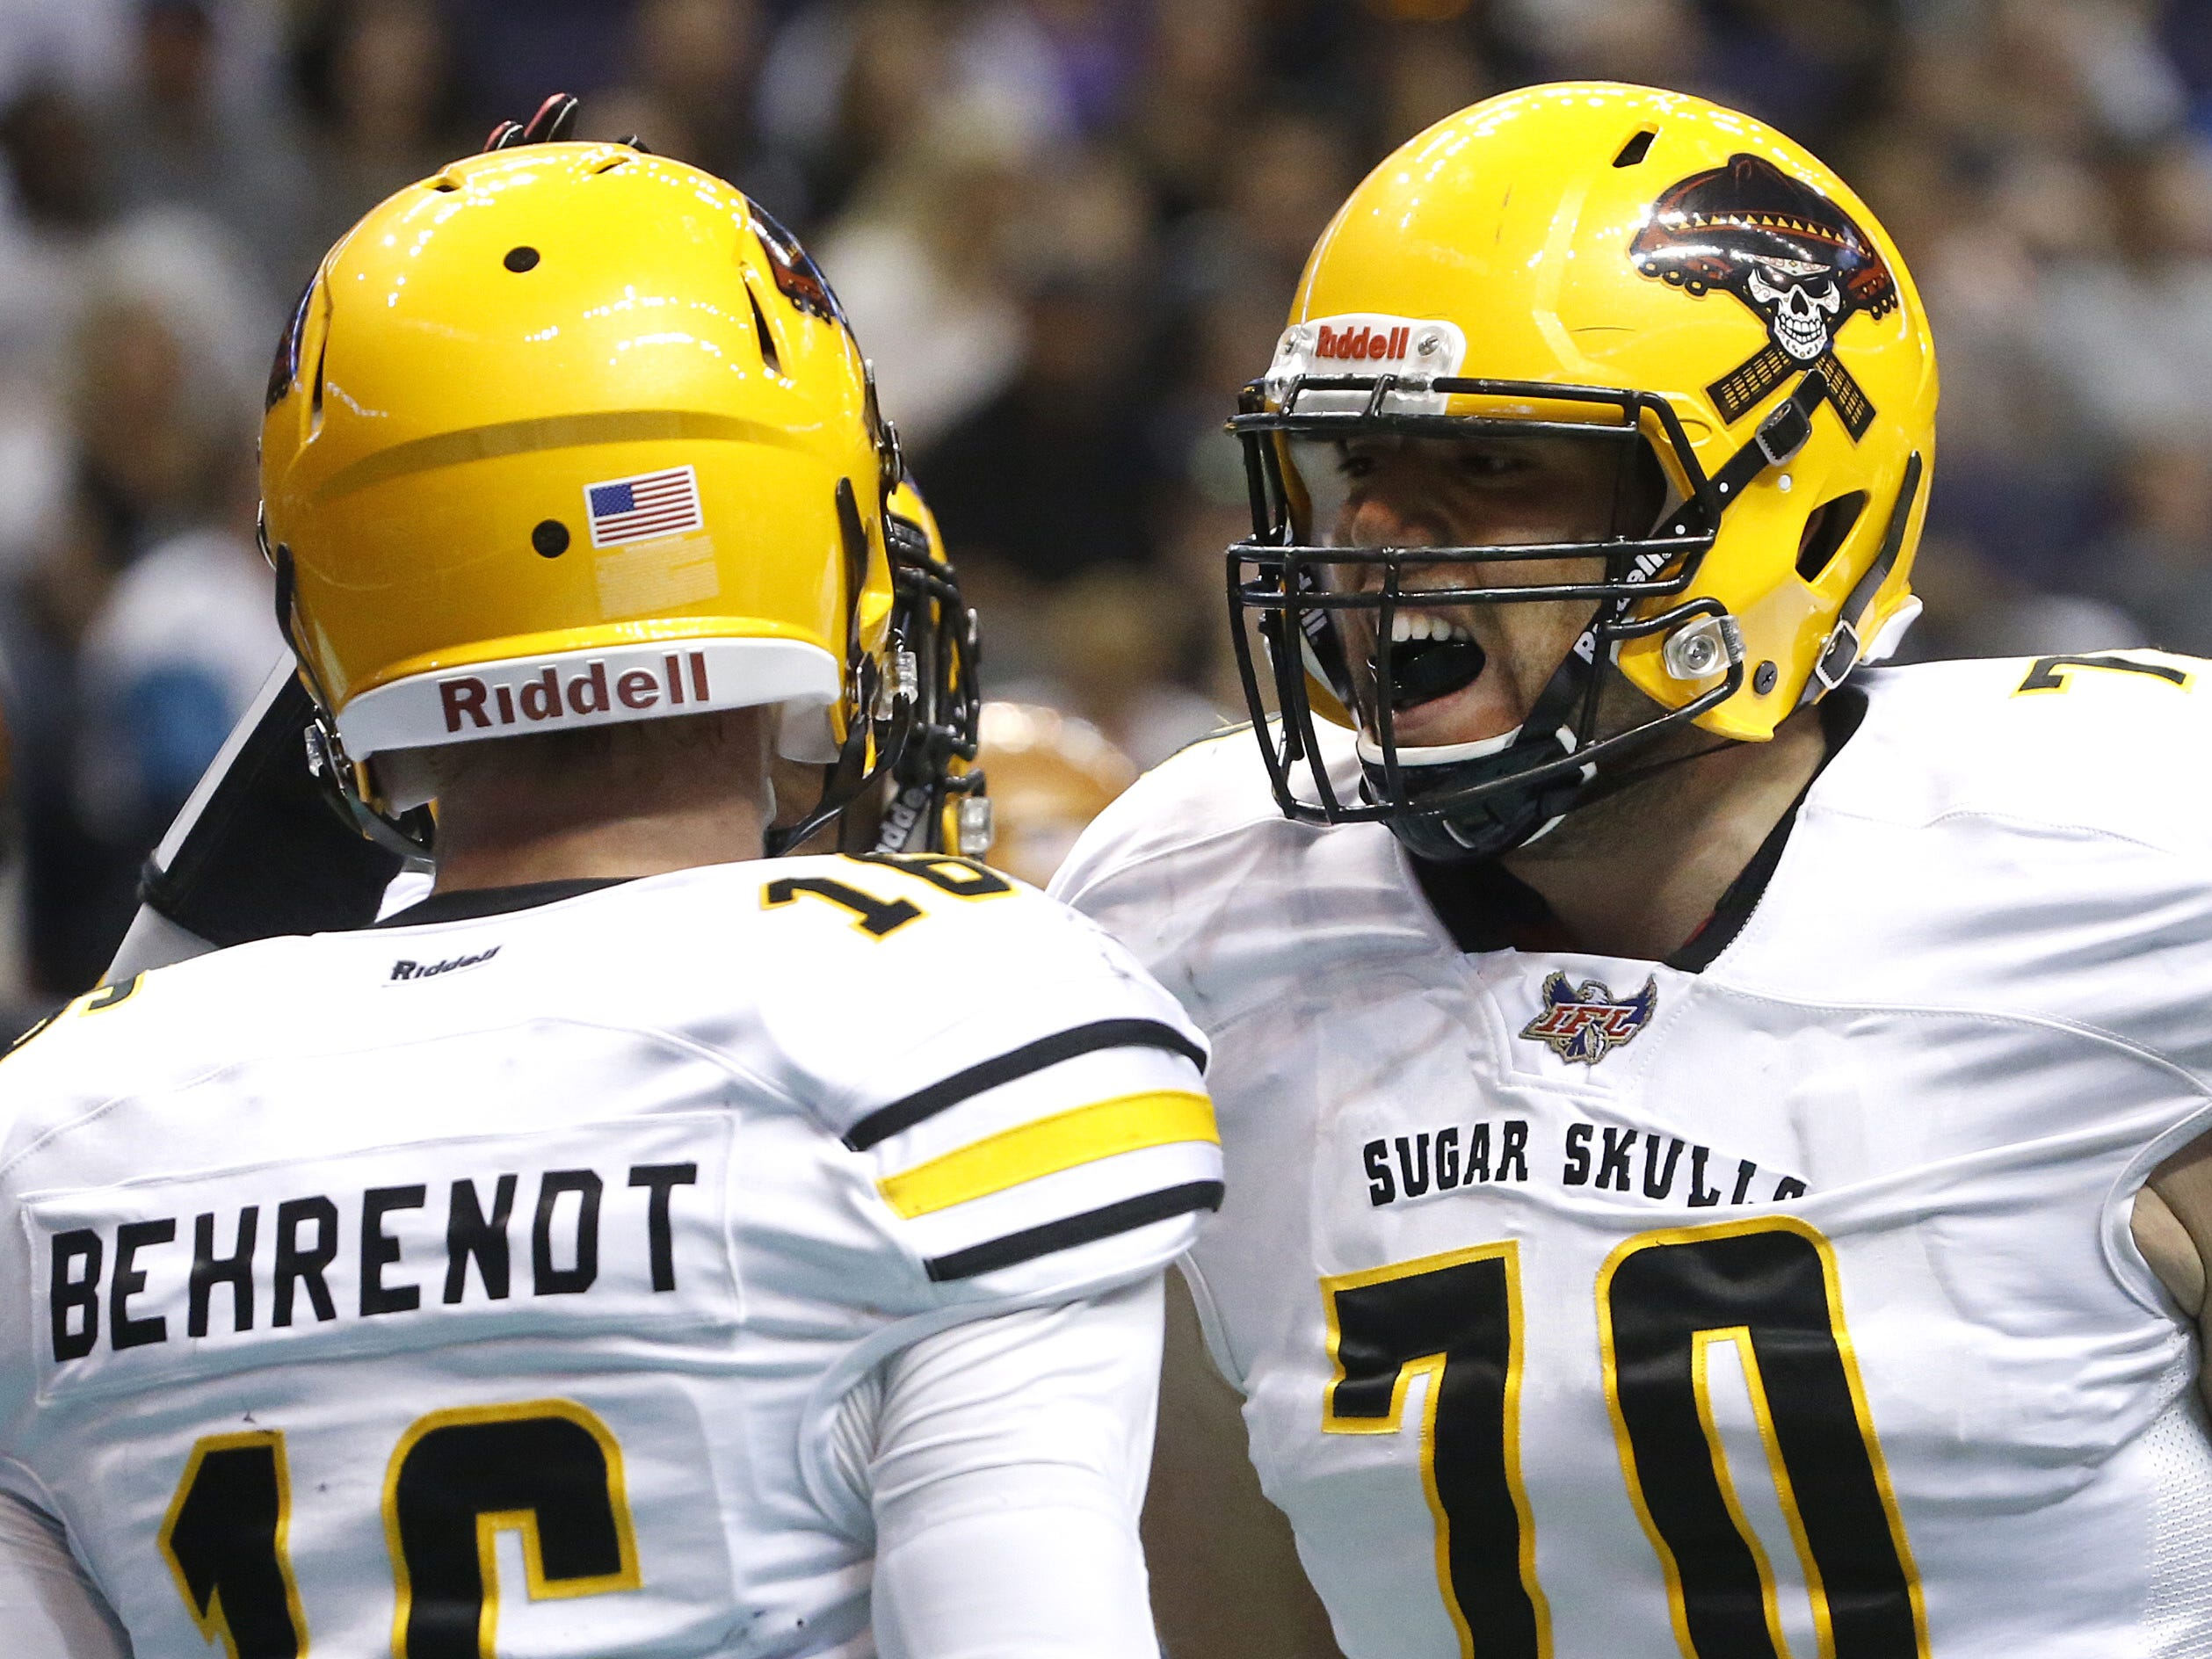 Sugar Skulls' Matt Behrendt (16) celebrates with teammate Alex Rios (70) after he scrambled for a touchdown during the first half at Talking Stick Resort Arena in Phoenix, Ariz. on March 16, 2019.